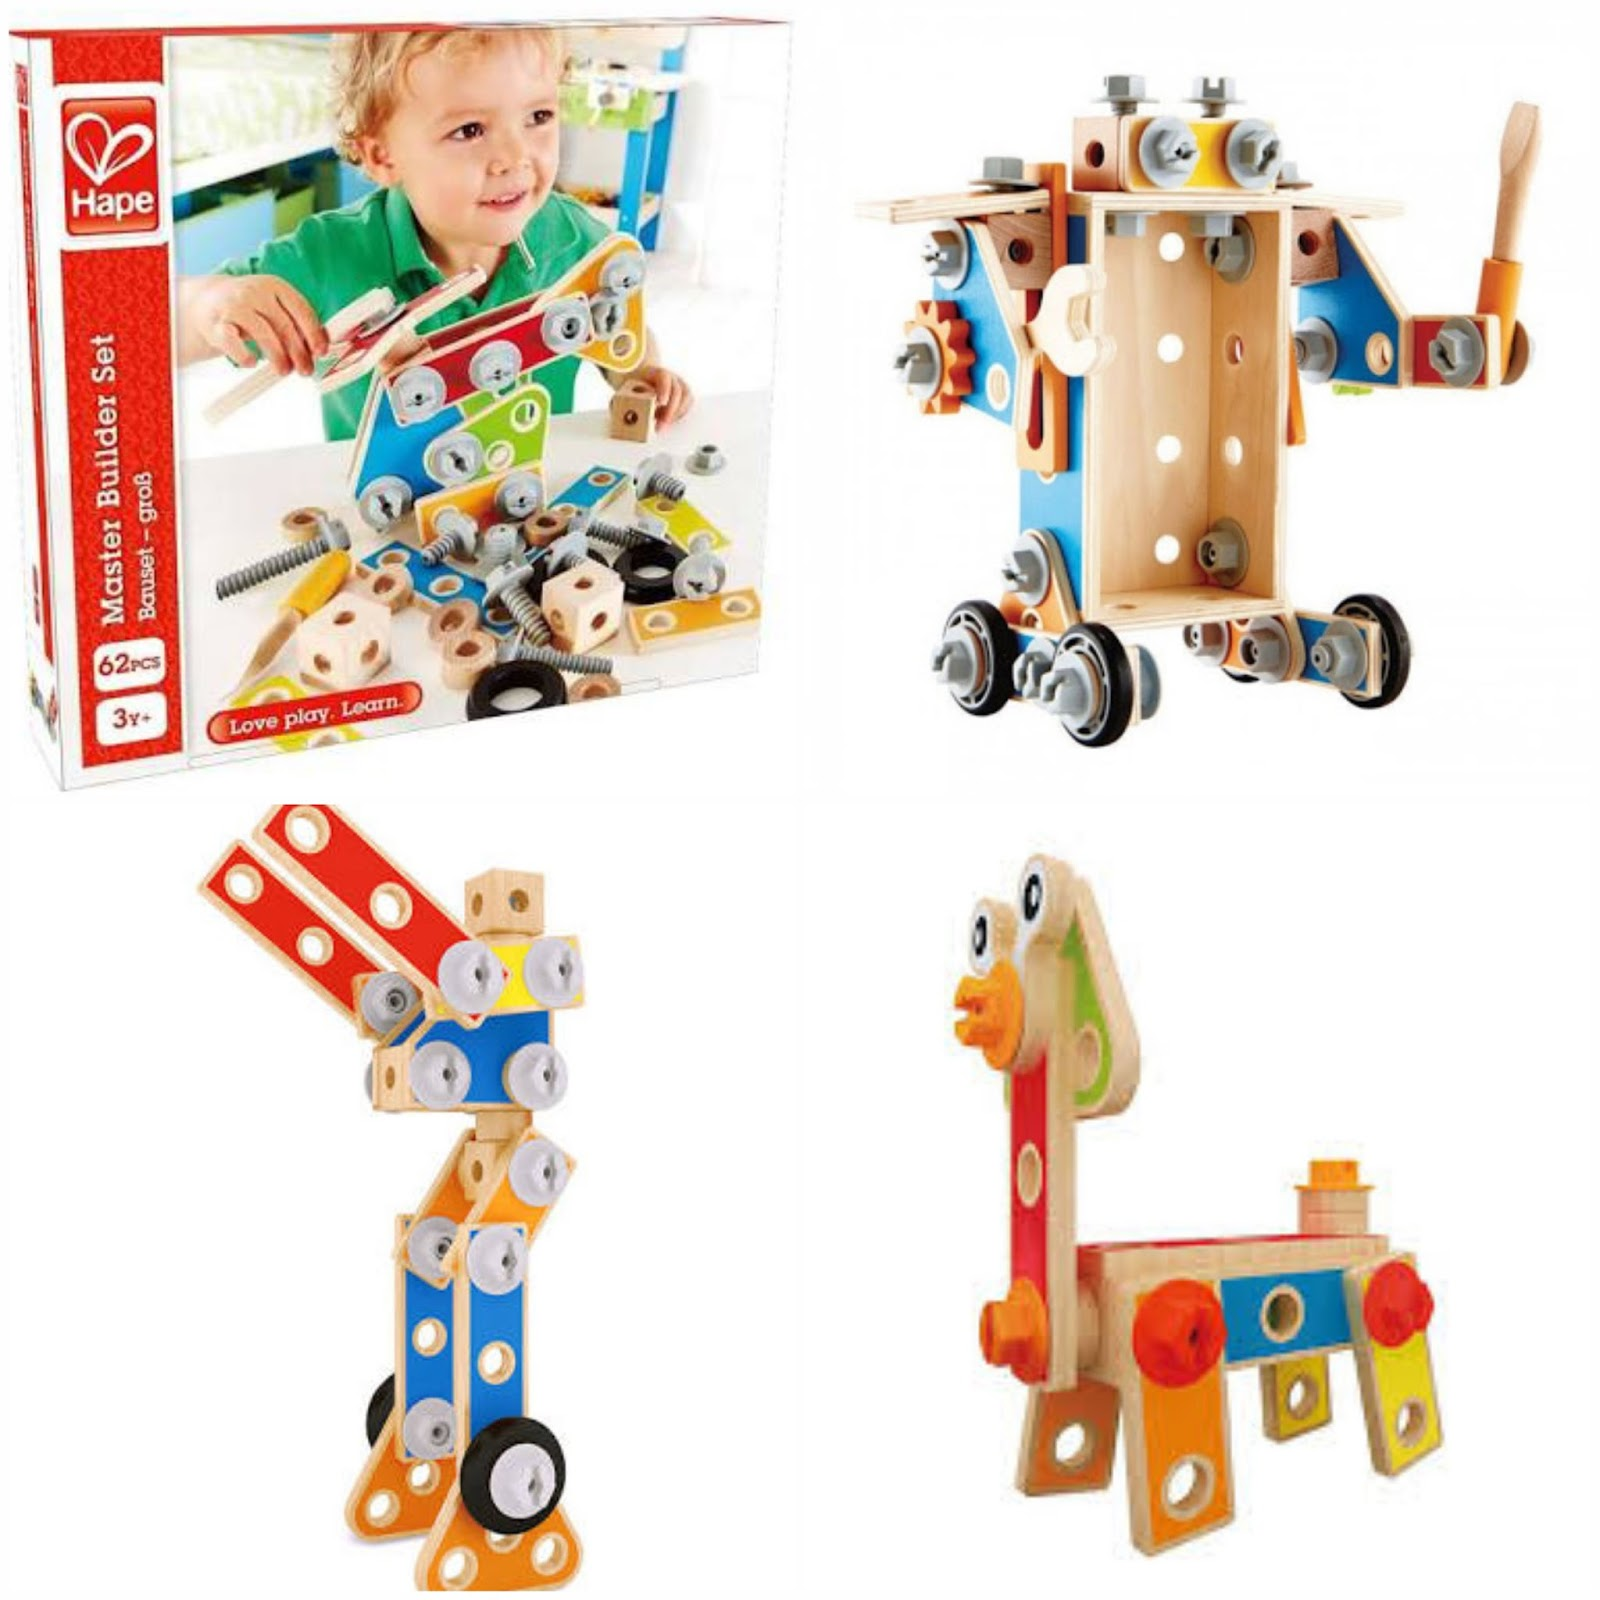 Nefe S Corner The Goshdarnit Awesome Toy List For Your